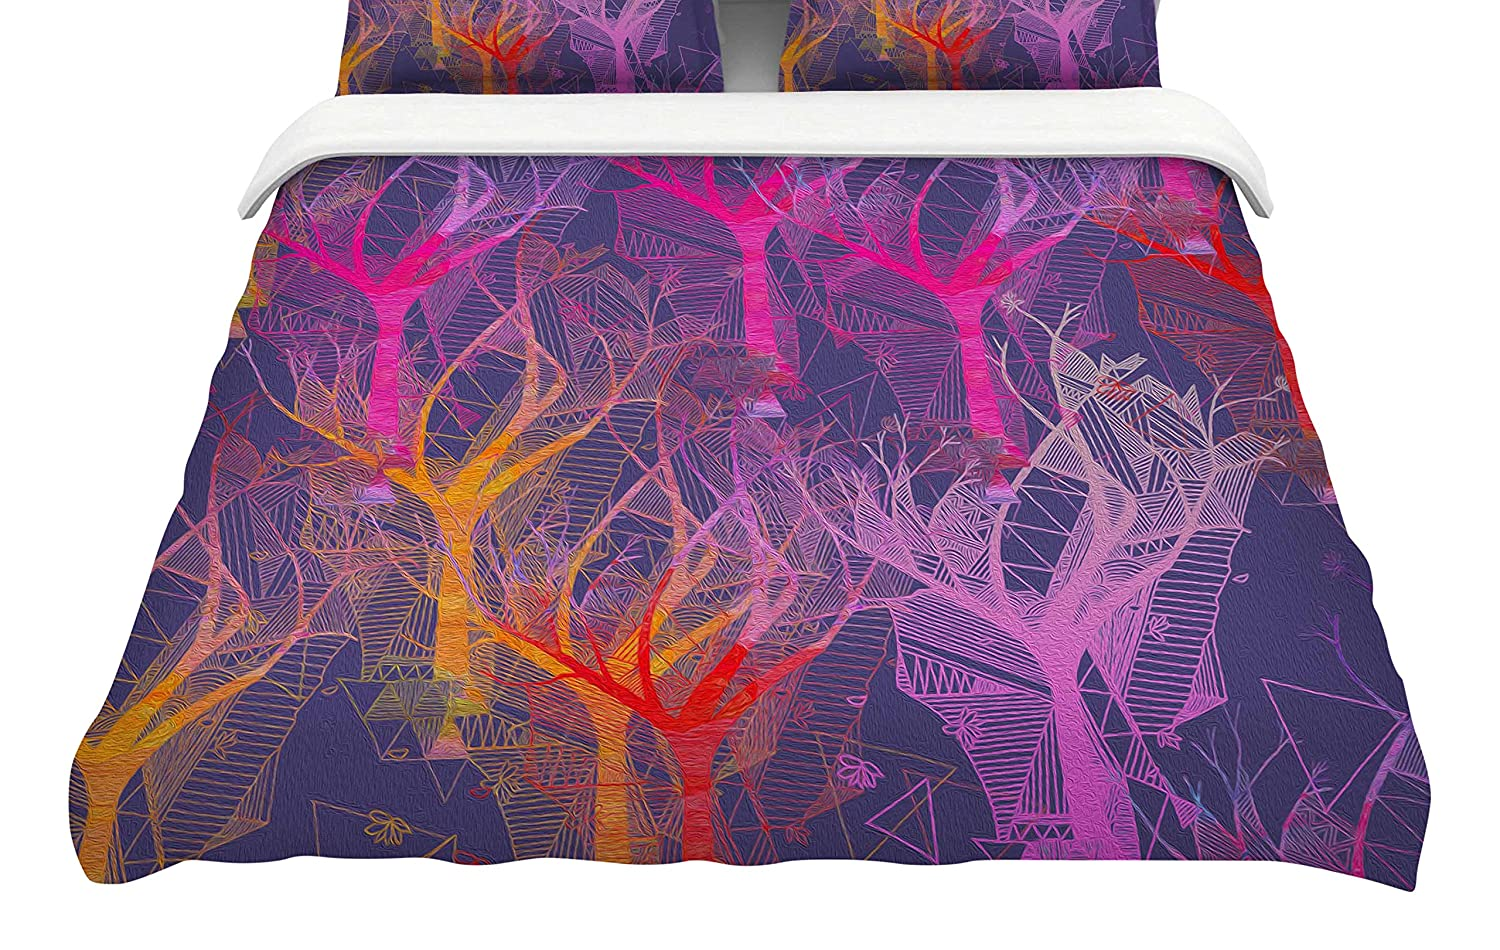 88 x 88, Kess InHouse Marianna Tankelevich Colorful Trees Featherweight Queen Duvet Cover